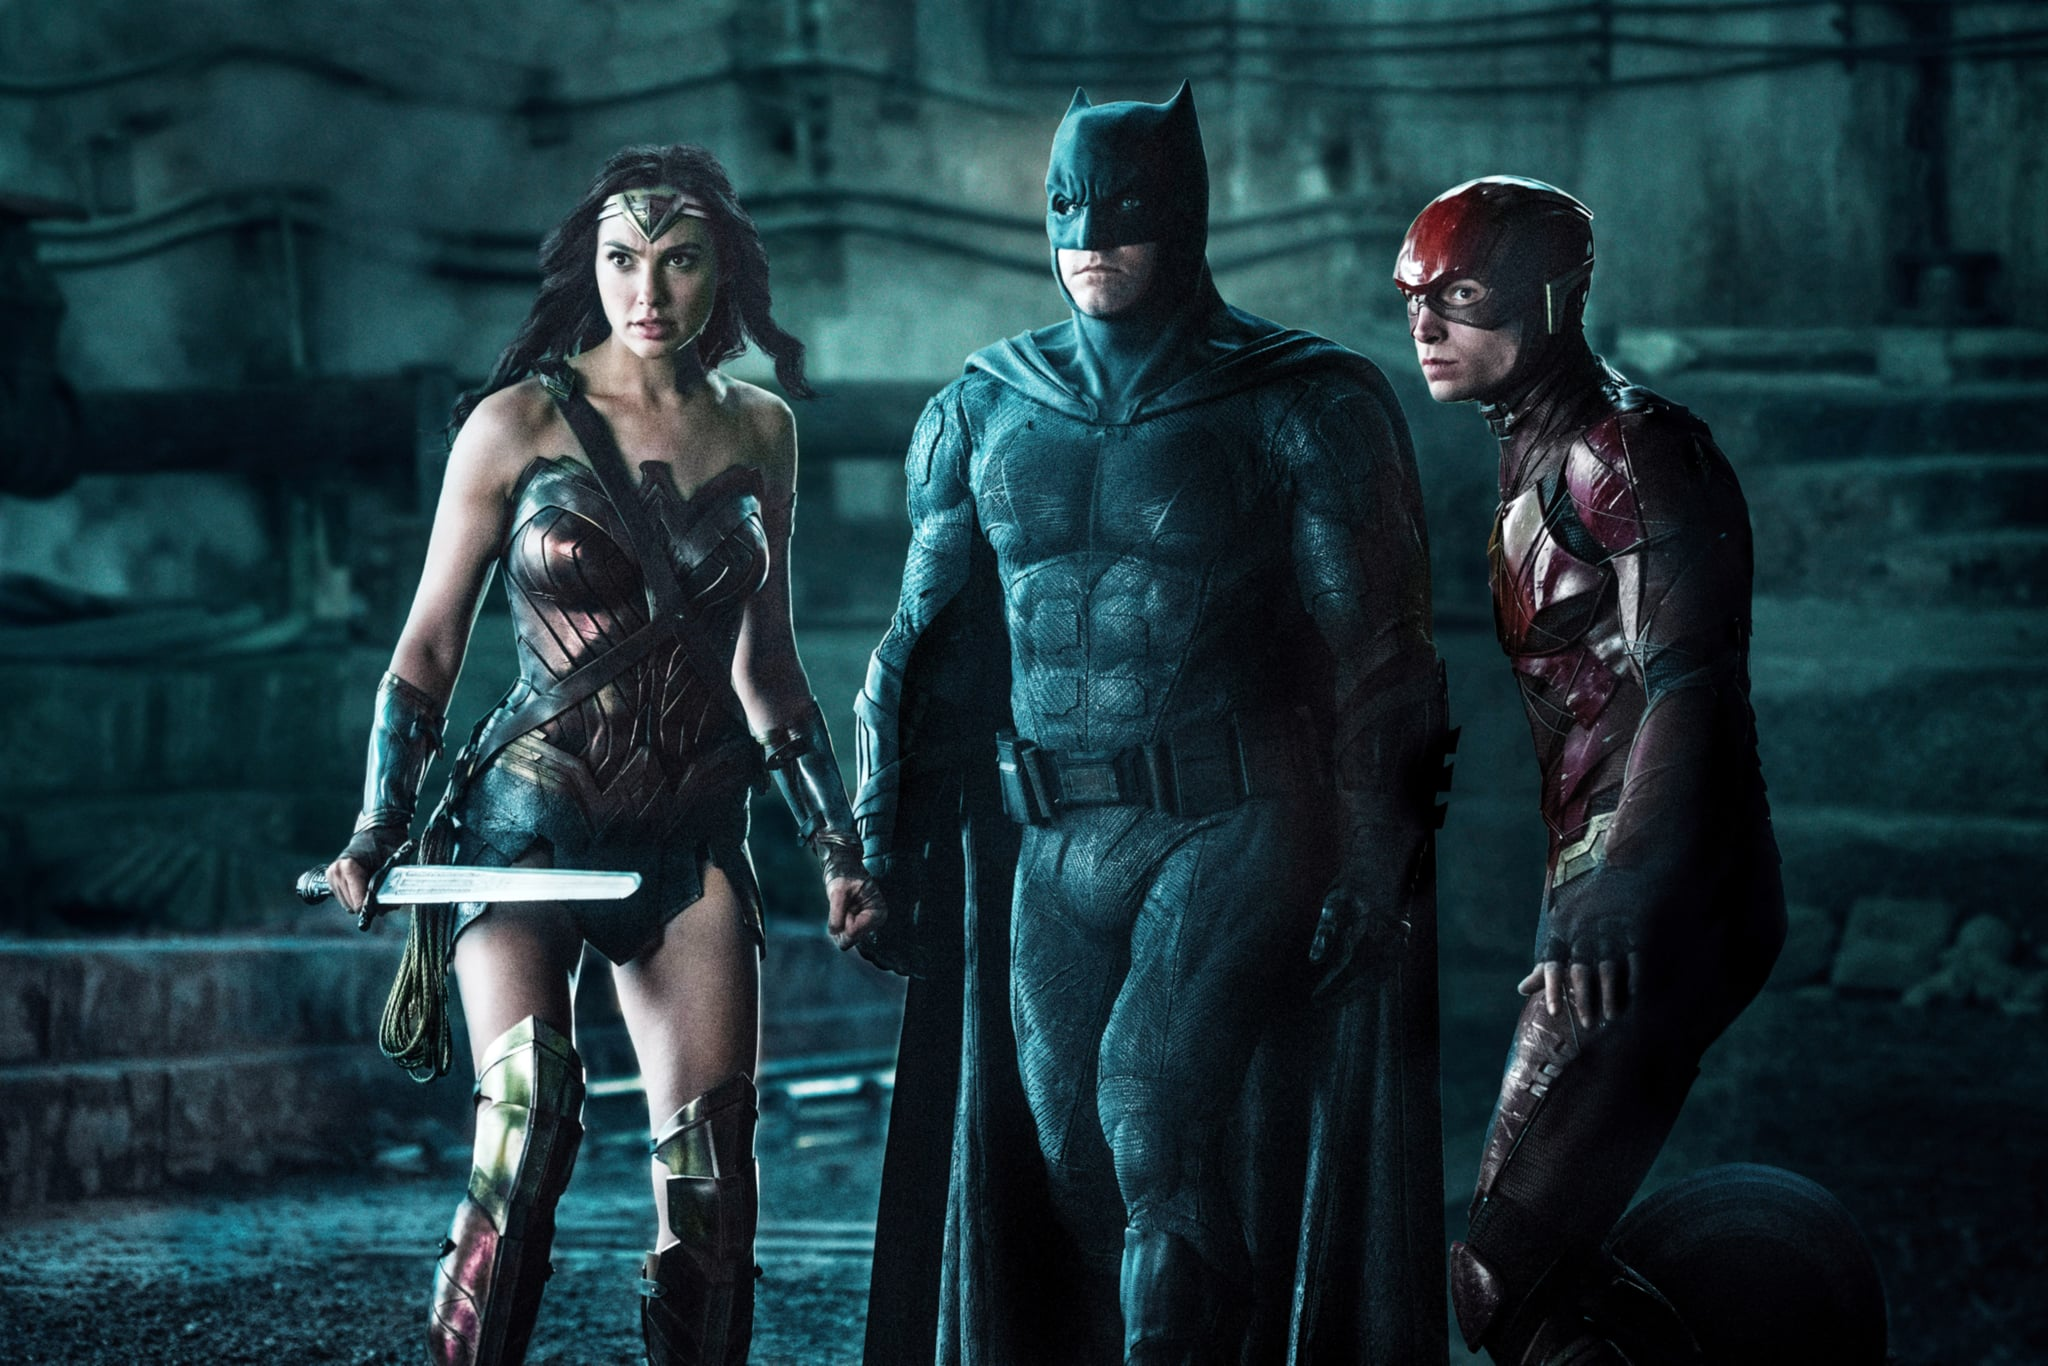 JUSTICE LEAGUE, l-r: Gal Gadot (as Wonder Woman), Ben Affleck (as Batman), Ezra Miller (as The Flash), 2017. ph: Clay Enos/Warner Bros. Pictures/courtesy Everett Collection